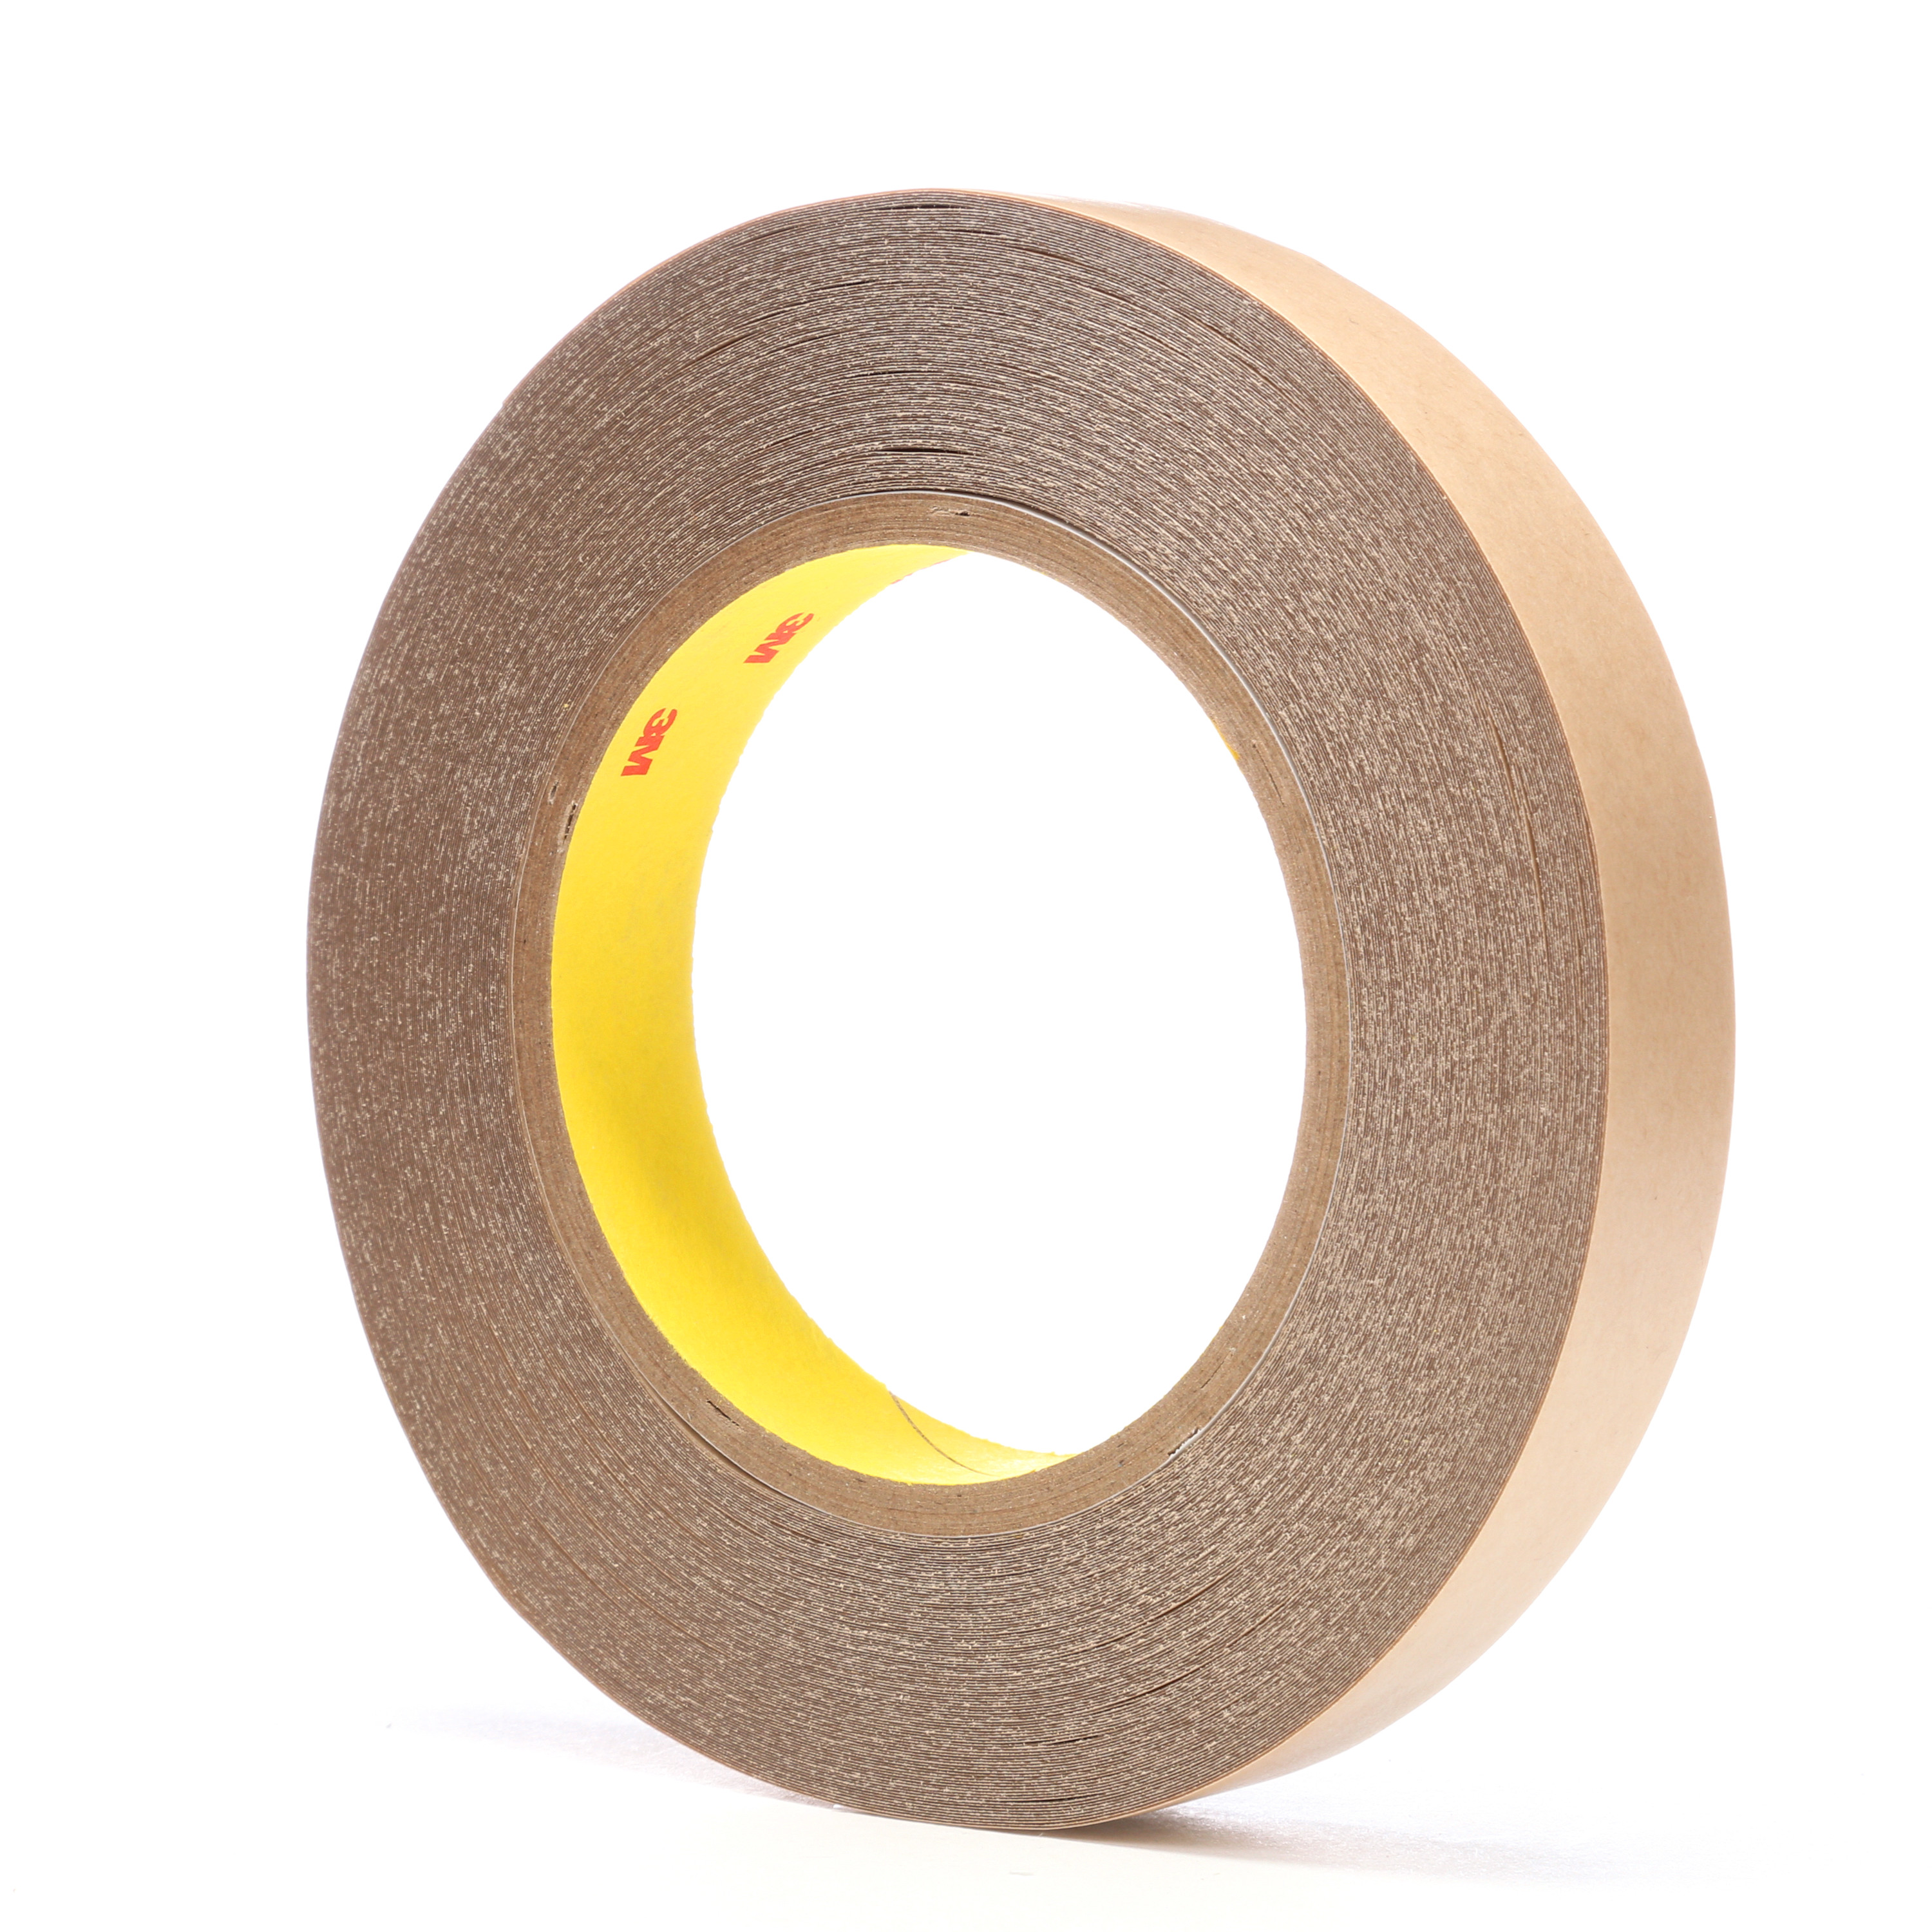 3M™ Double Coated Tape 9500PC, Clear, 3/4 in x 36 yd, 5.6 mil, 48 rolls per case